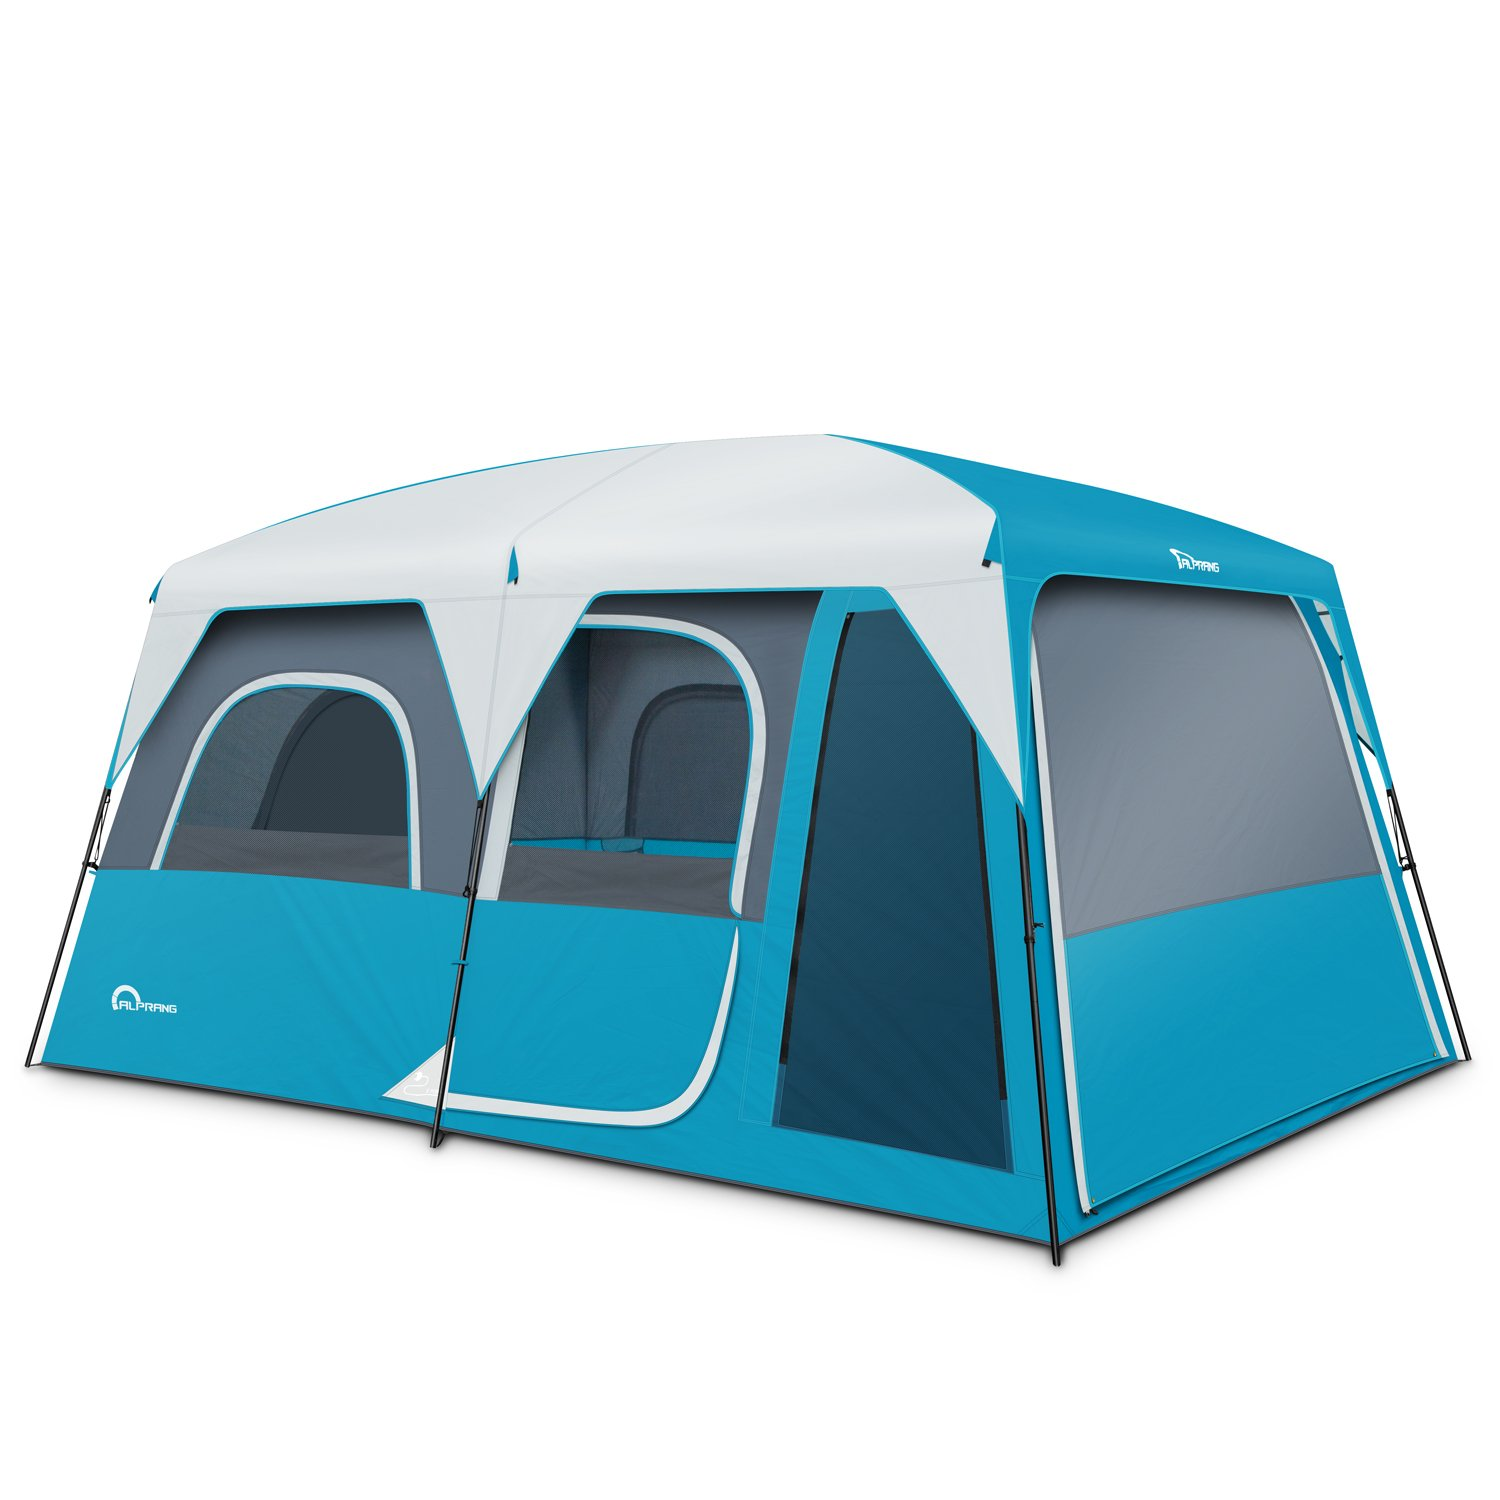 Alprang Family Camping Tent - Easy to Setup, Spacious, and Durable - 9 Person Cabin Tent-Lets You Have Fun with All Your Special Ones by Alprang (Image #1)